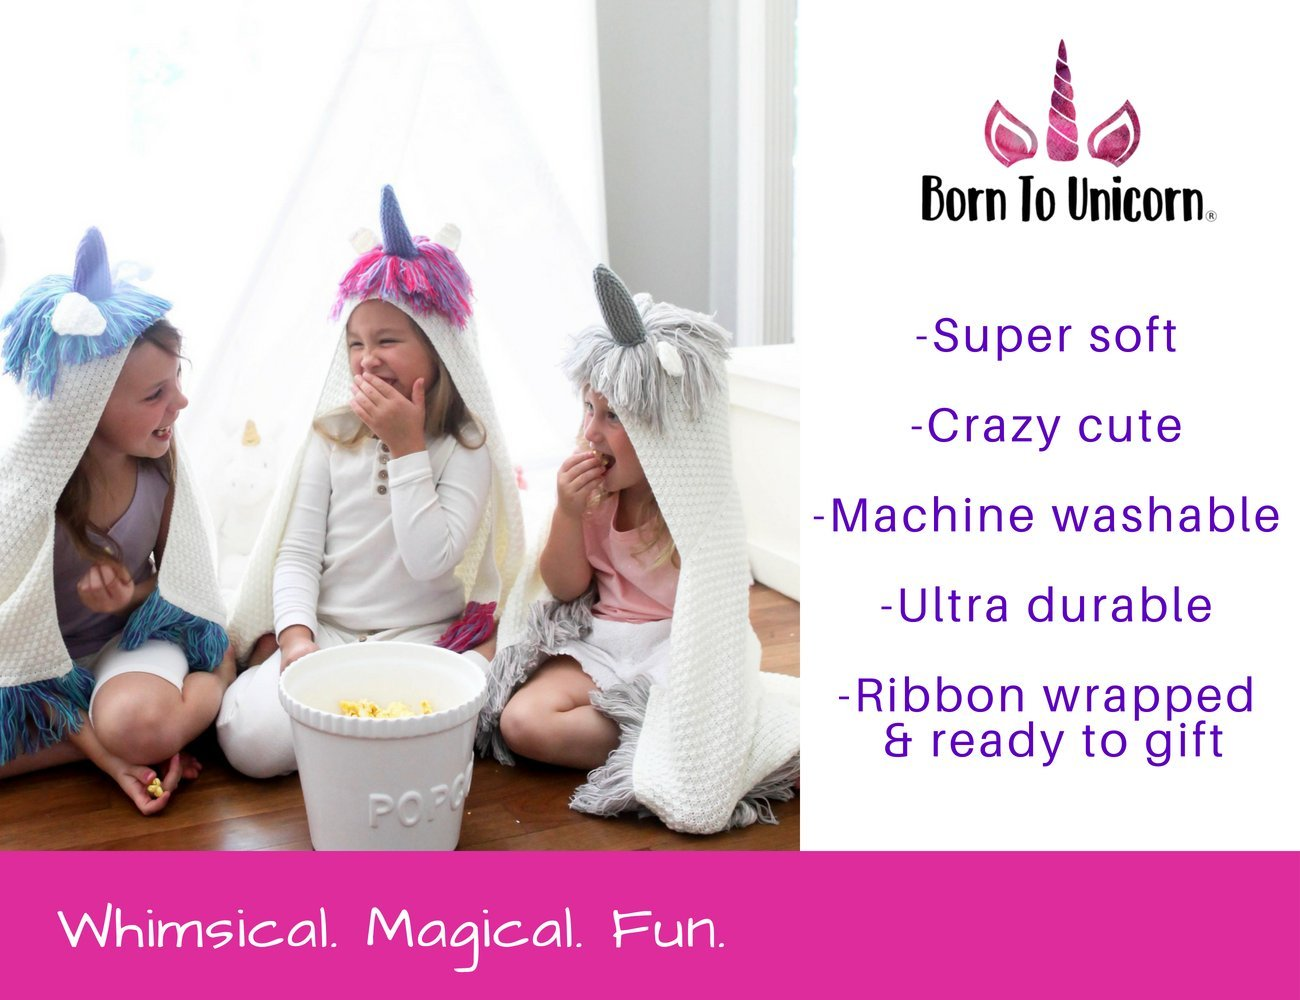 Born To Unicorn Blanket for Girls- Hooded, Kids Pink, Purple Wearable Crochet Knit w/Hood Throw Blankets Wrap, Toddlers Cute Plush Knitted Hoodie, Soft Kids Blanket Gift, Cozy Magic Cloak w/Hood by Born To Unicorn (Image #5)